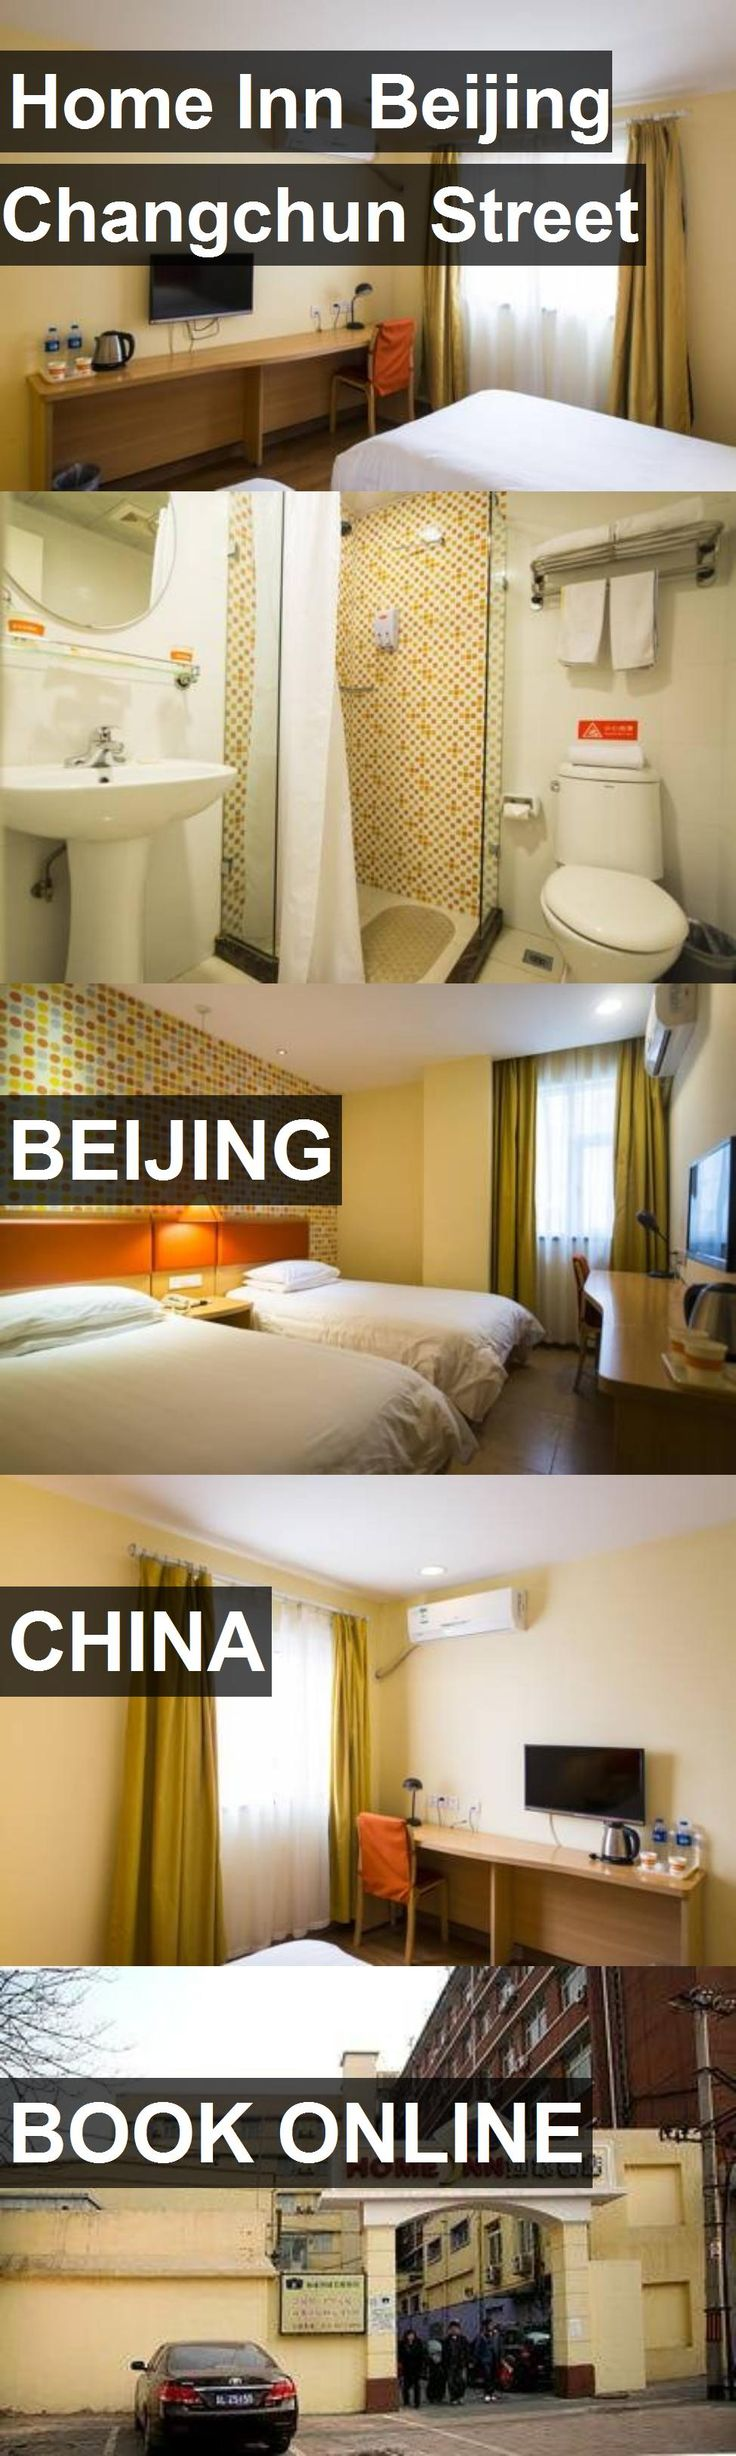 Hotel Home Inn Beijing Changchun Street in Beijing, China. For more information, photos, reviews and best prices please follow the link. #China #Beijing #HomeInnBeijingChangchunStreet #hotel #travel #vacation